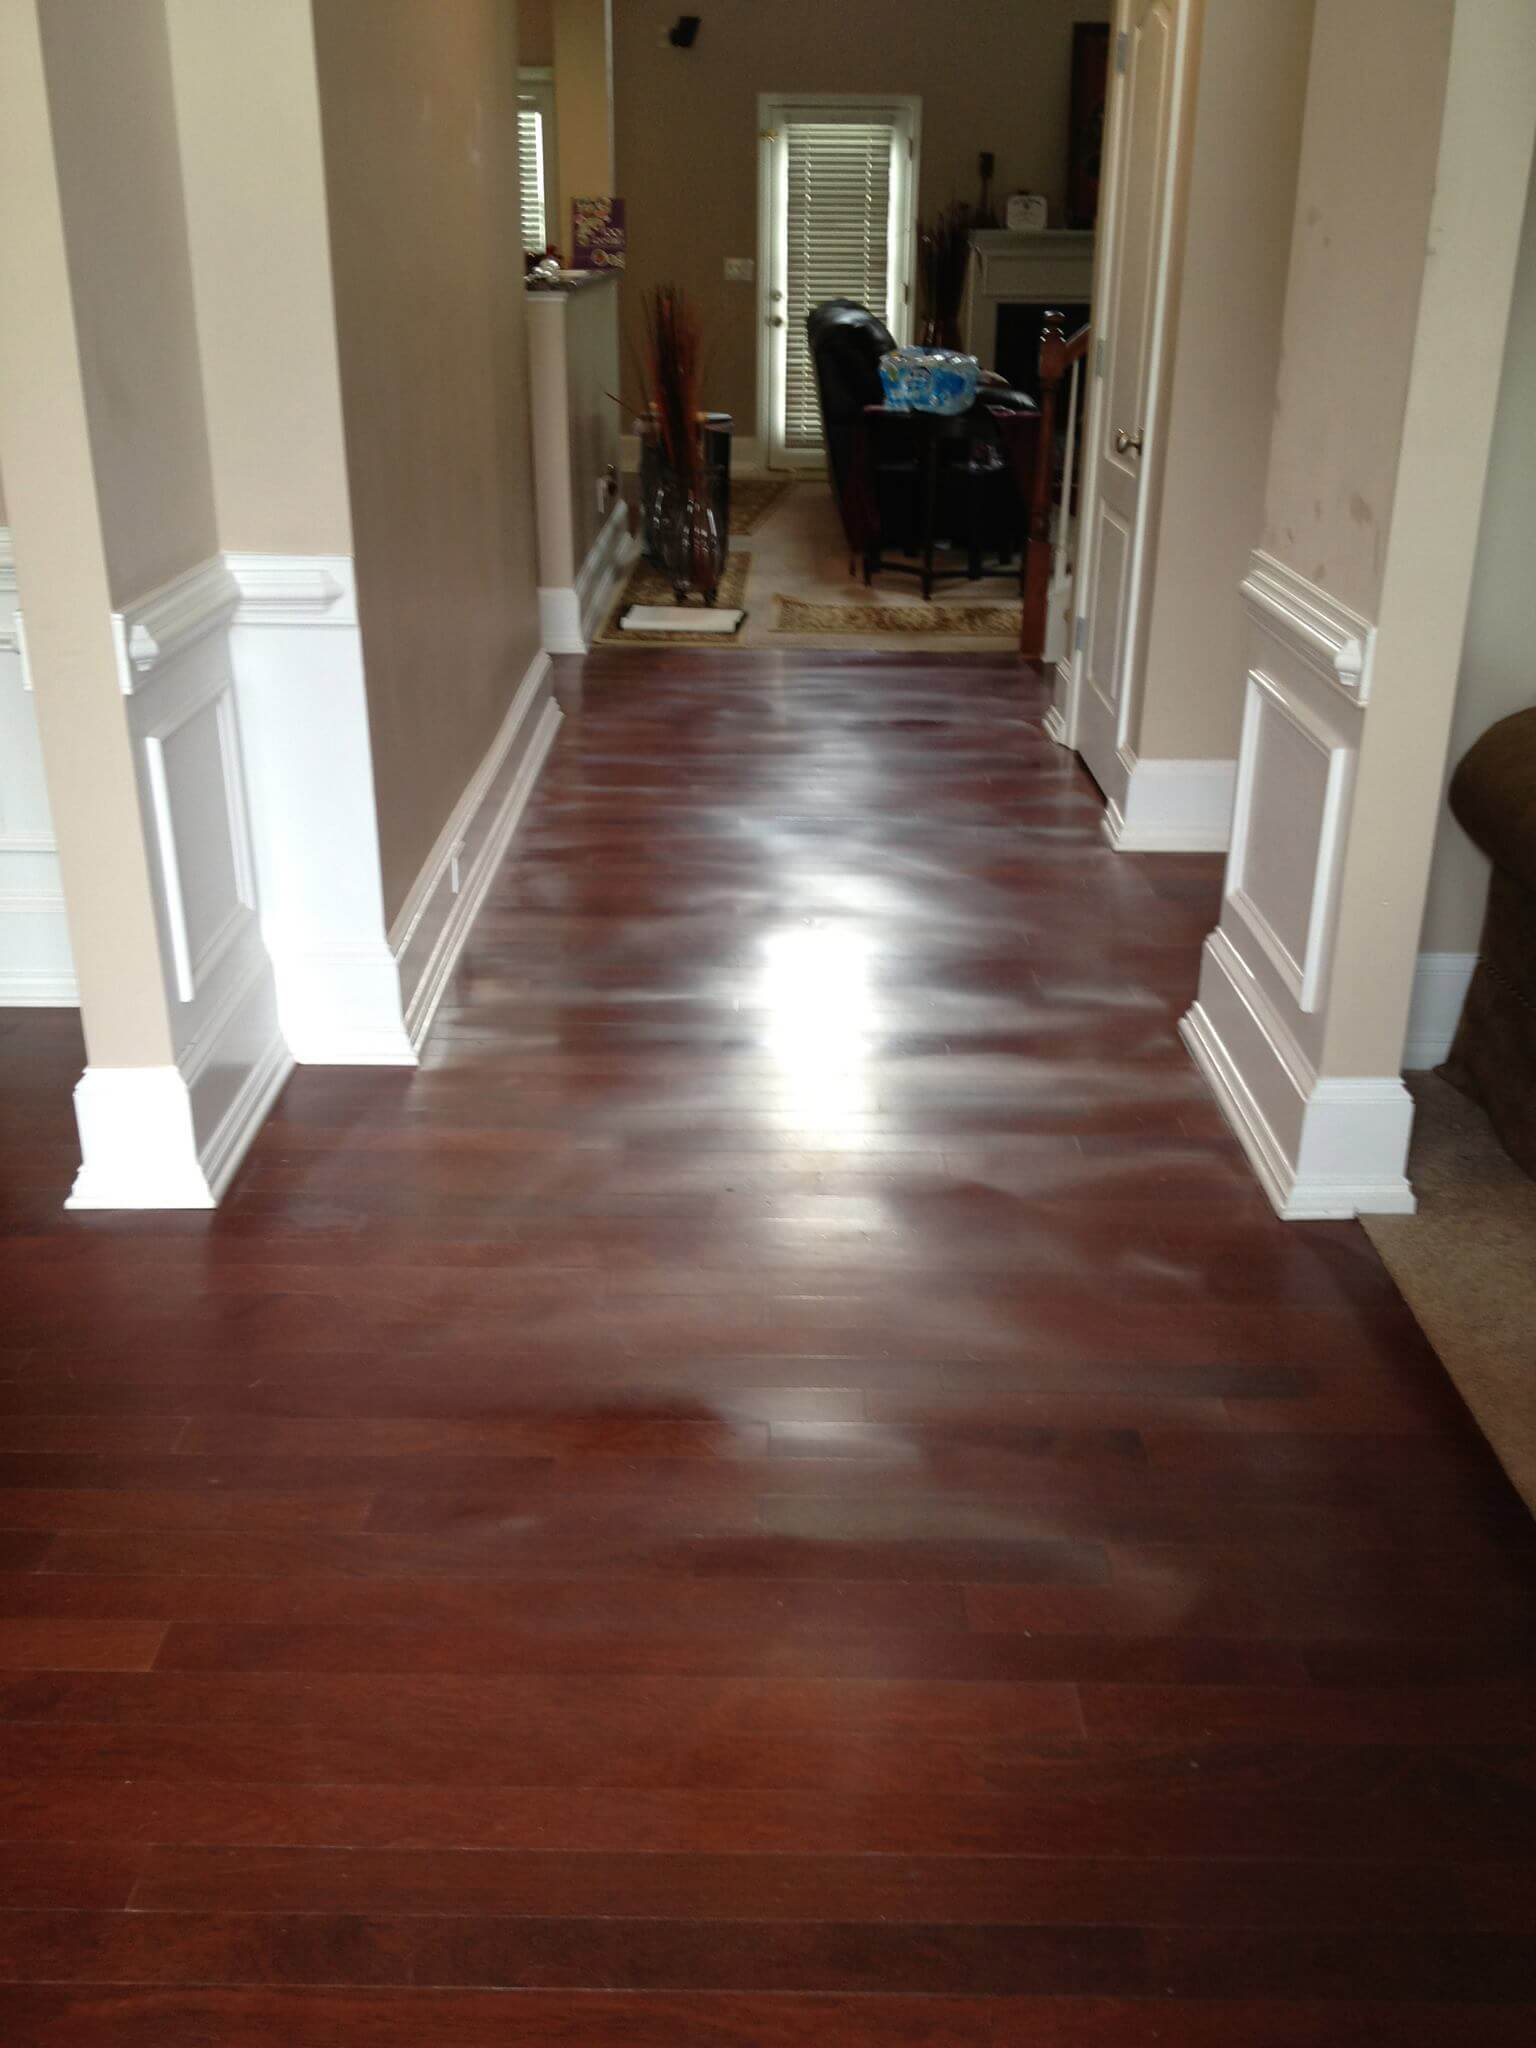 warped and scratched hardwood flooring